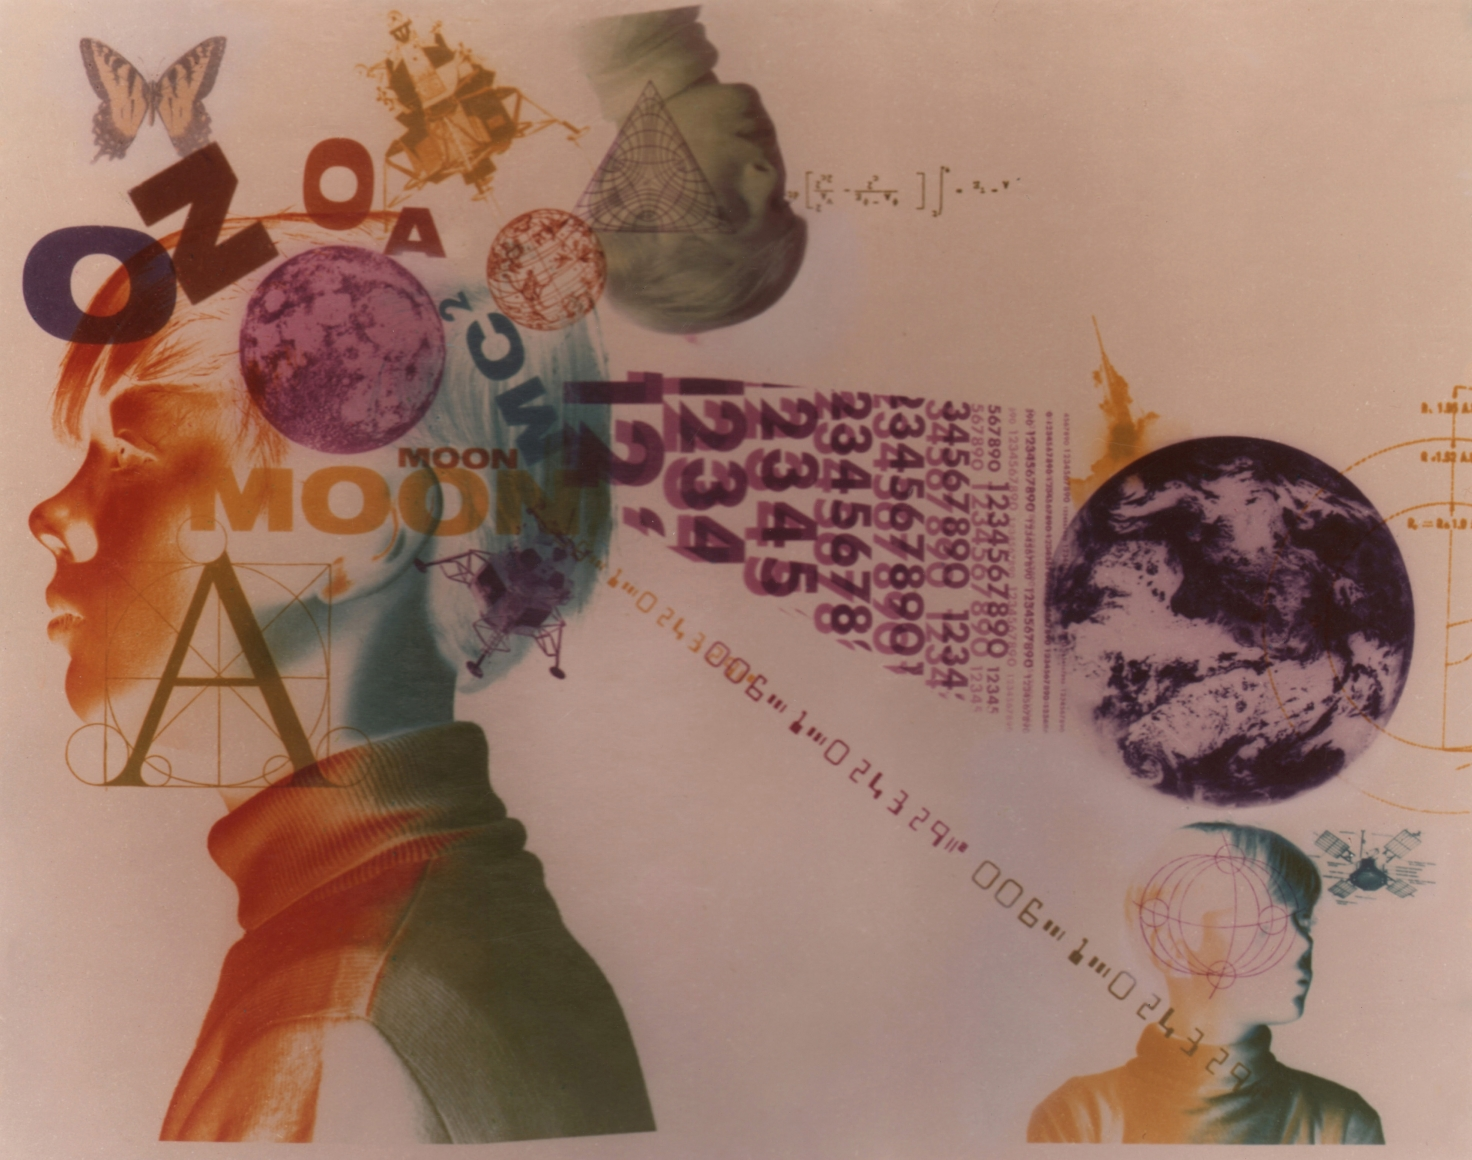 19. David Attie, Untitled, c. 1970. Composite color photo of three portraits in profile, featuring shapes formed by various numbers and letters, a globe, a butterfly, and more.